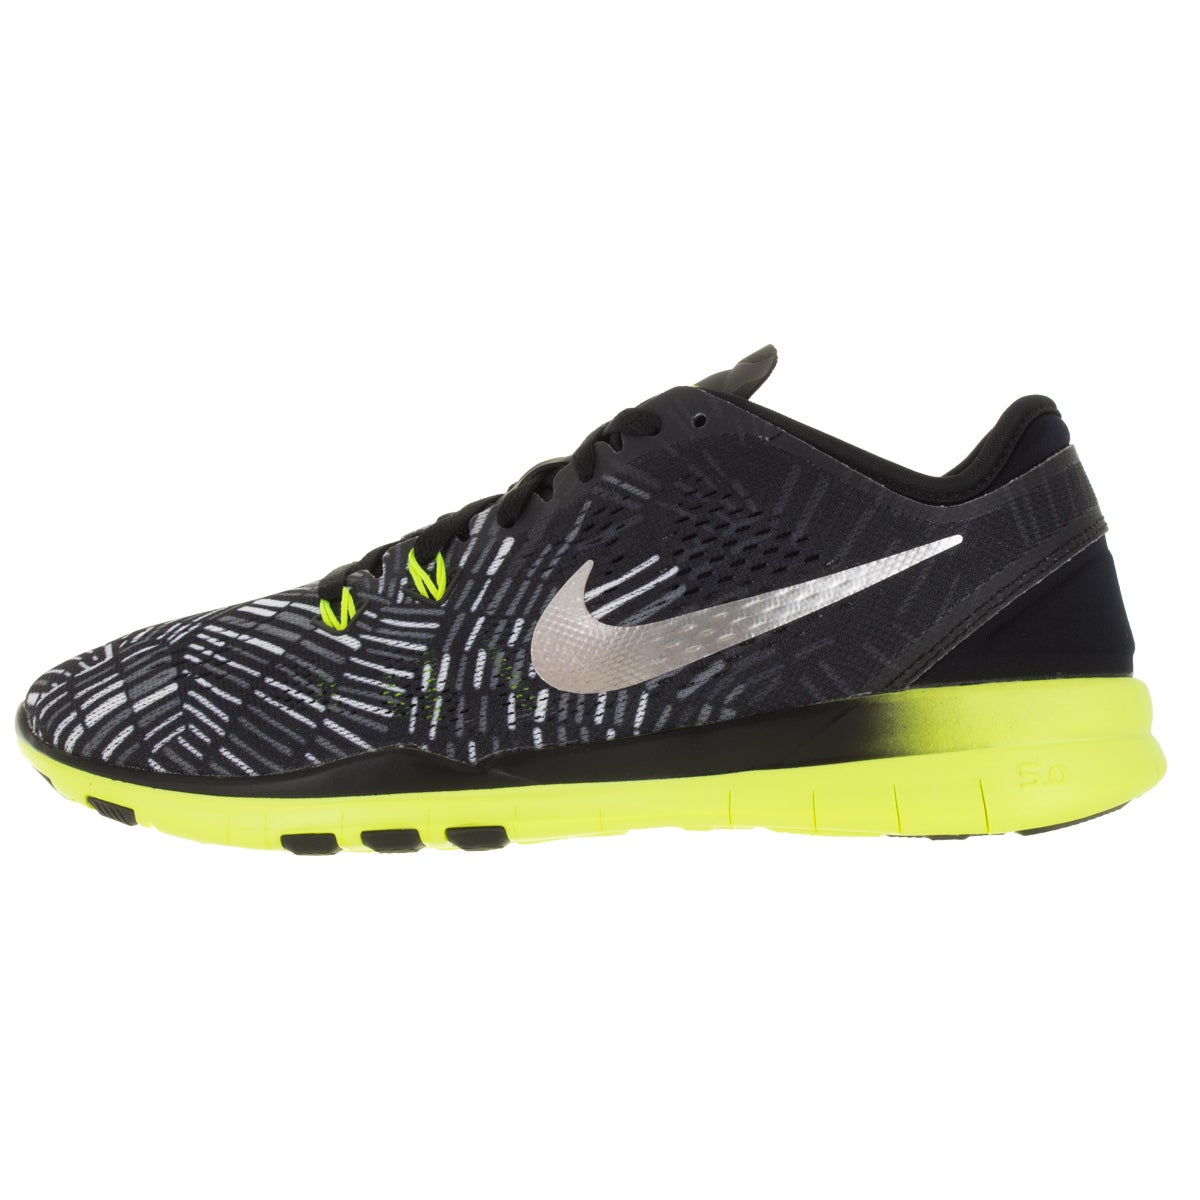 wholesale dealer f0a20 9a94e Shop Nike Women s Free 5.0 Tr Fit 5 Prt Black Metallic Silver Volt Training  Shoe - Free Shipping Today - Overstock - 12321940